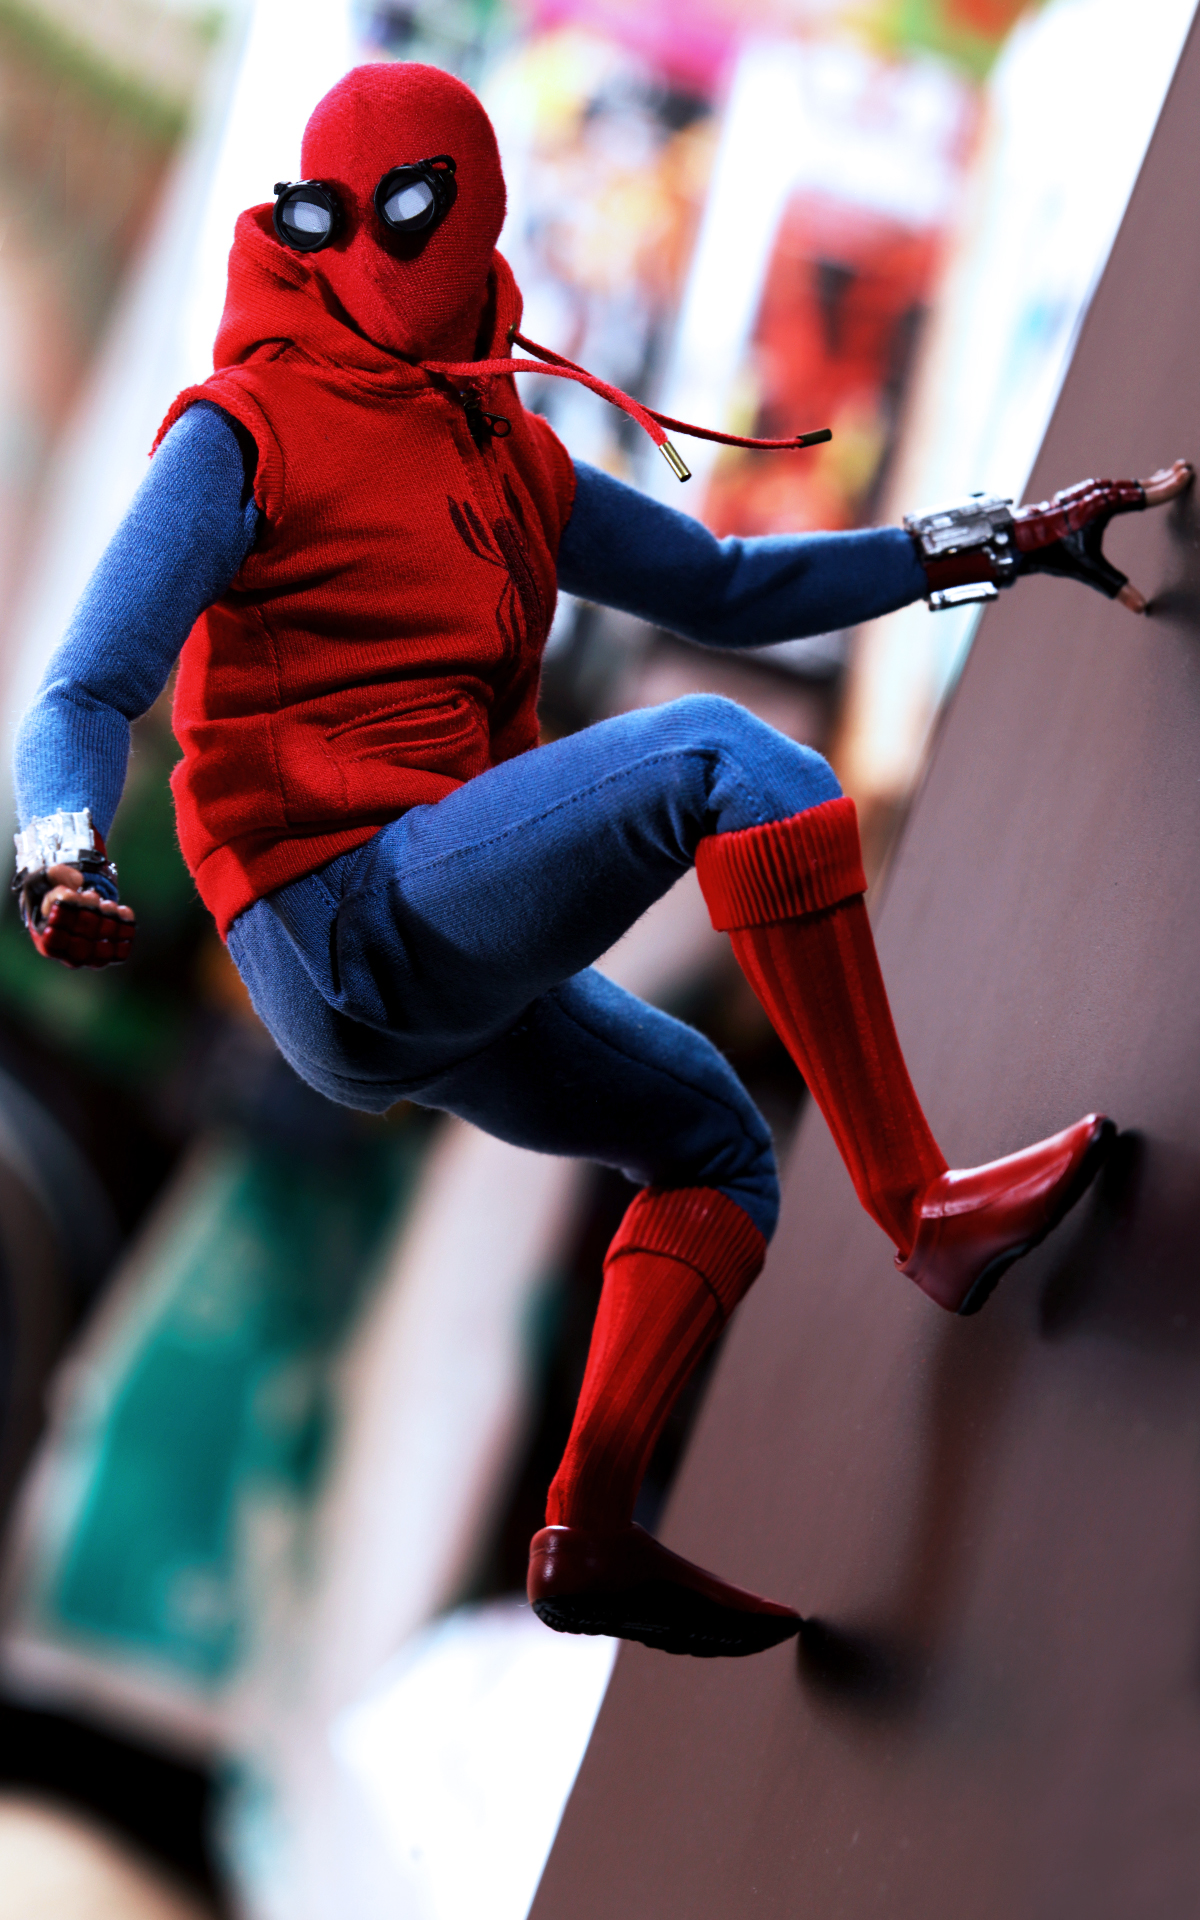 Hot Toys Photos Hot Toys Figure Are Great